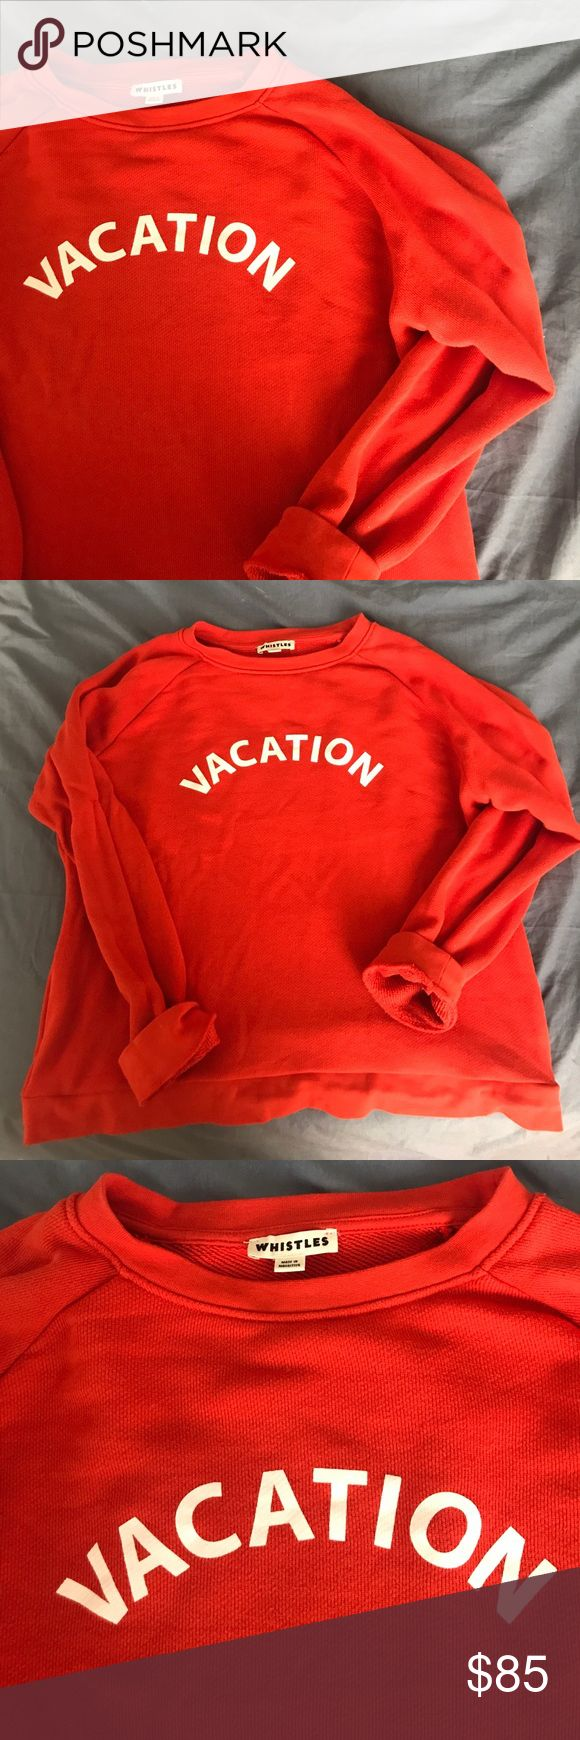 Whistles Vacation Crewneck Sweatshirt Worn three times. Washed according to care instructions. Looks brand new. Size large. I am a size medium and it has a slightly oversized fit on me. Whistles Tops Sweatshirts & Hoodies